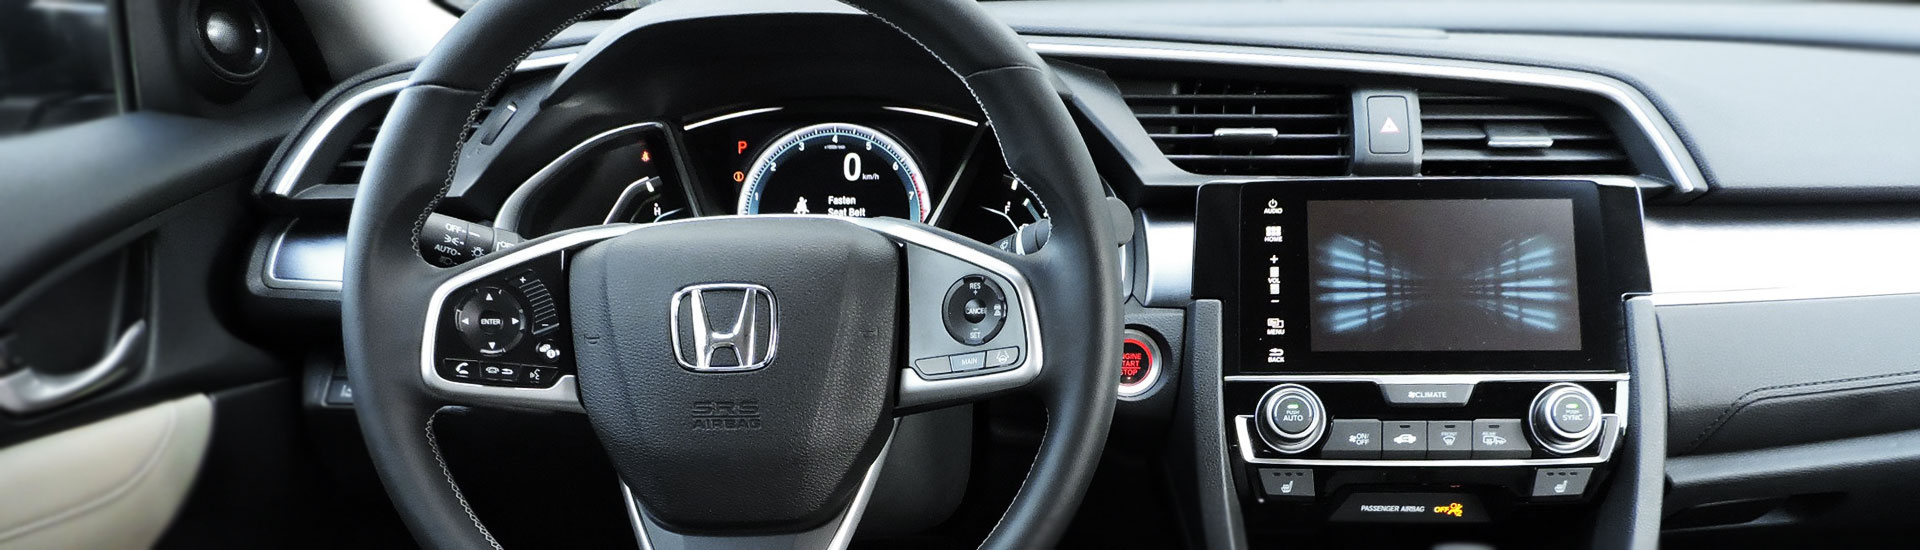 2011 Honda CR-V Custom Dash Kits